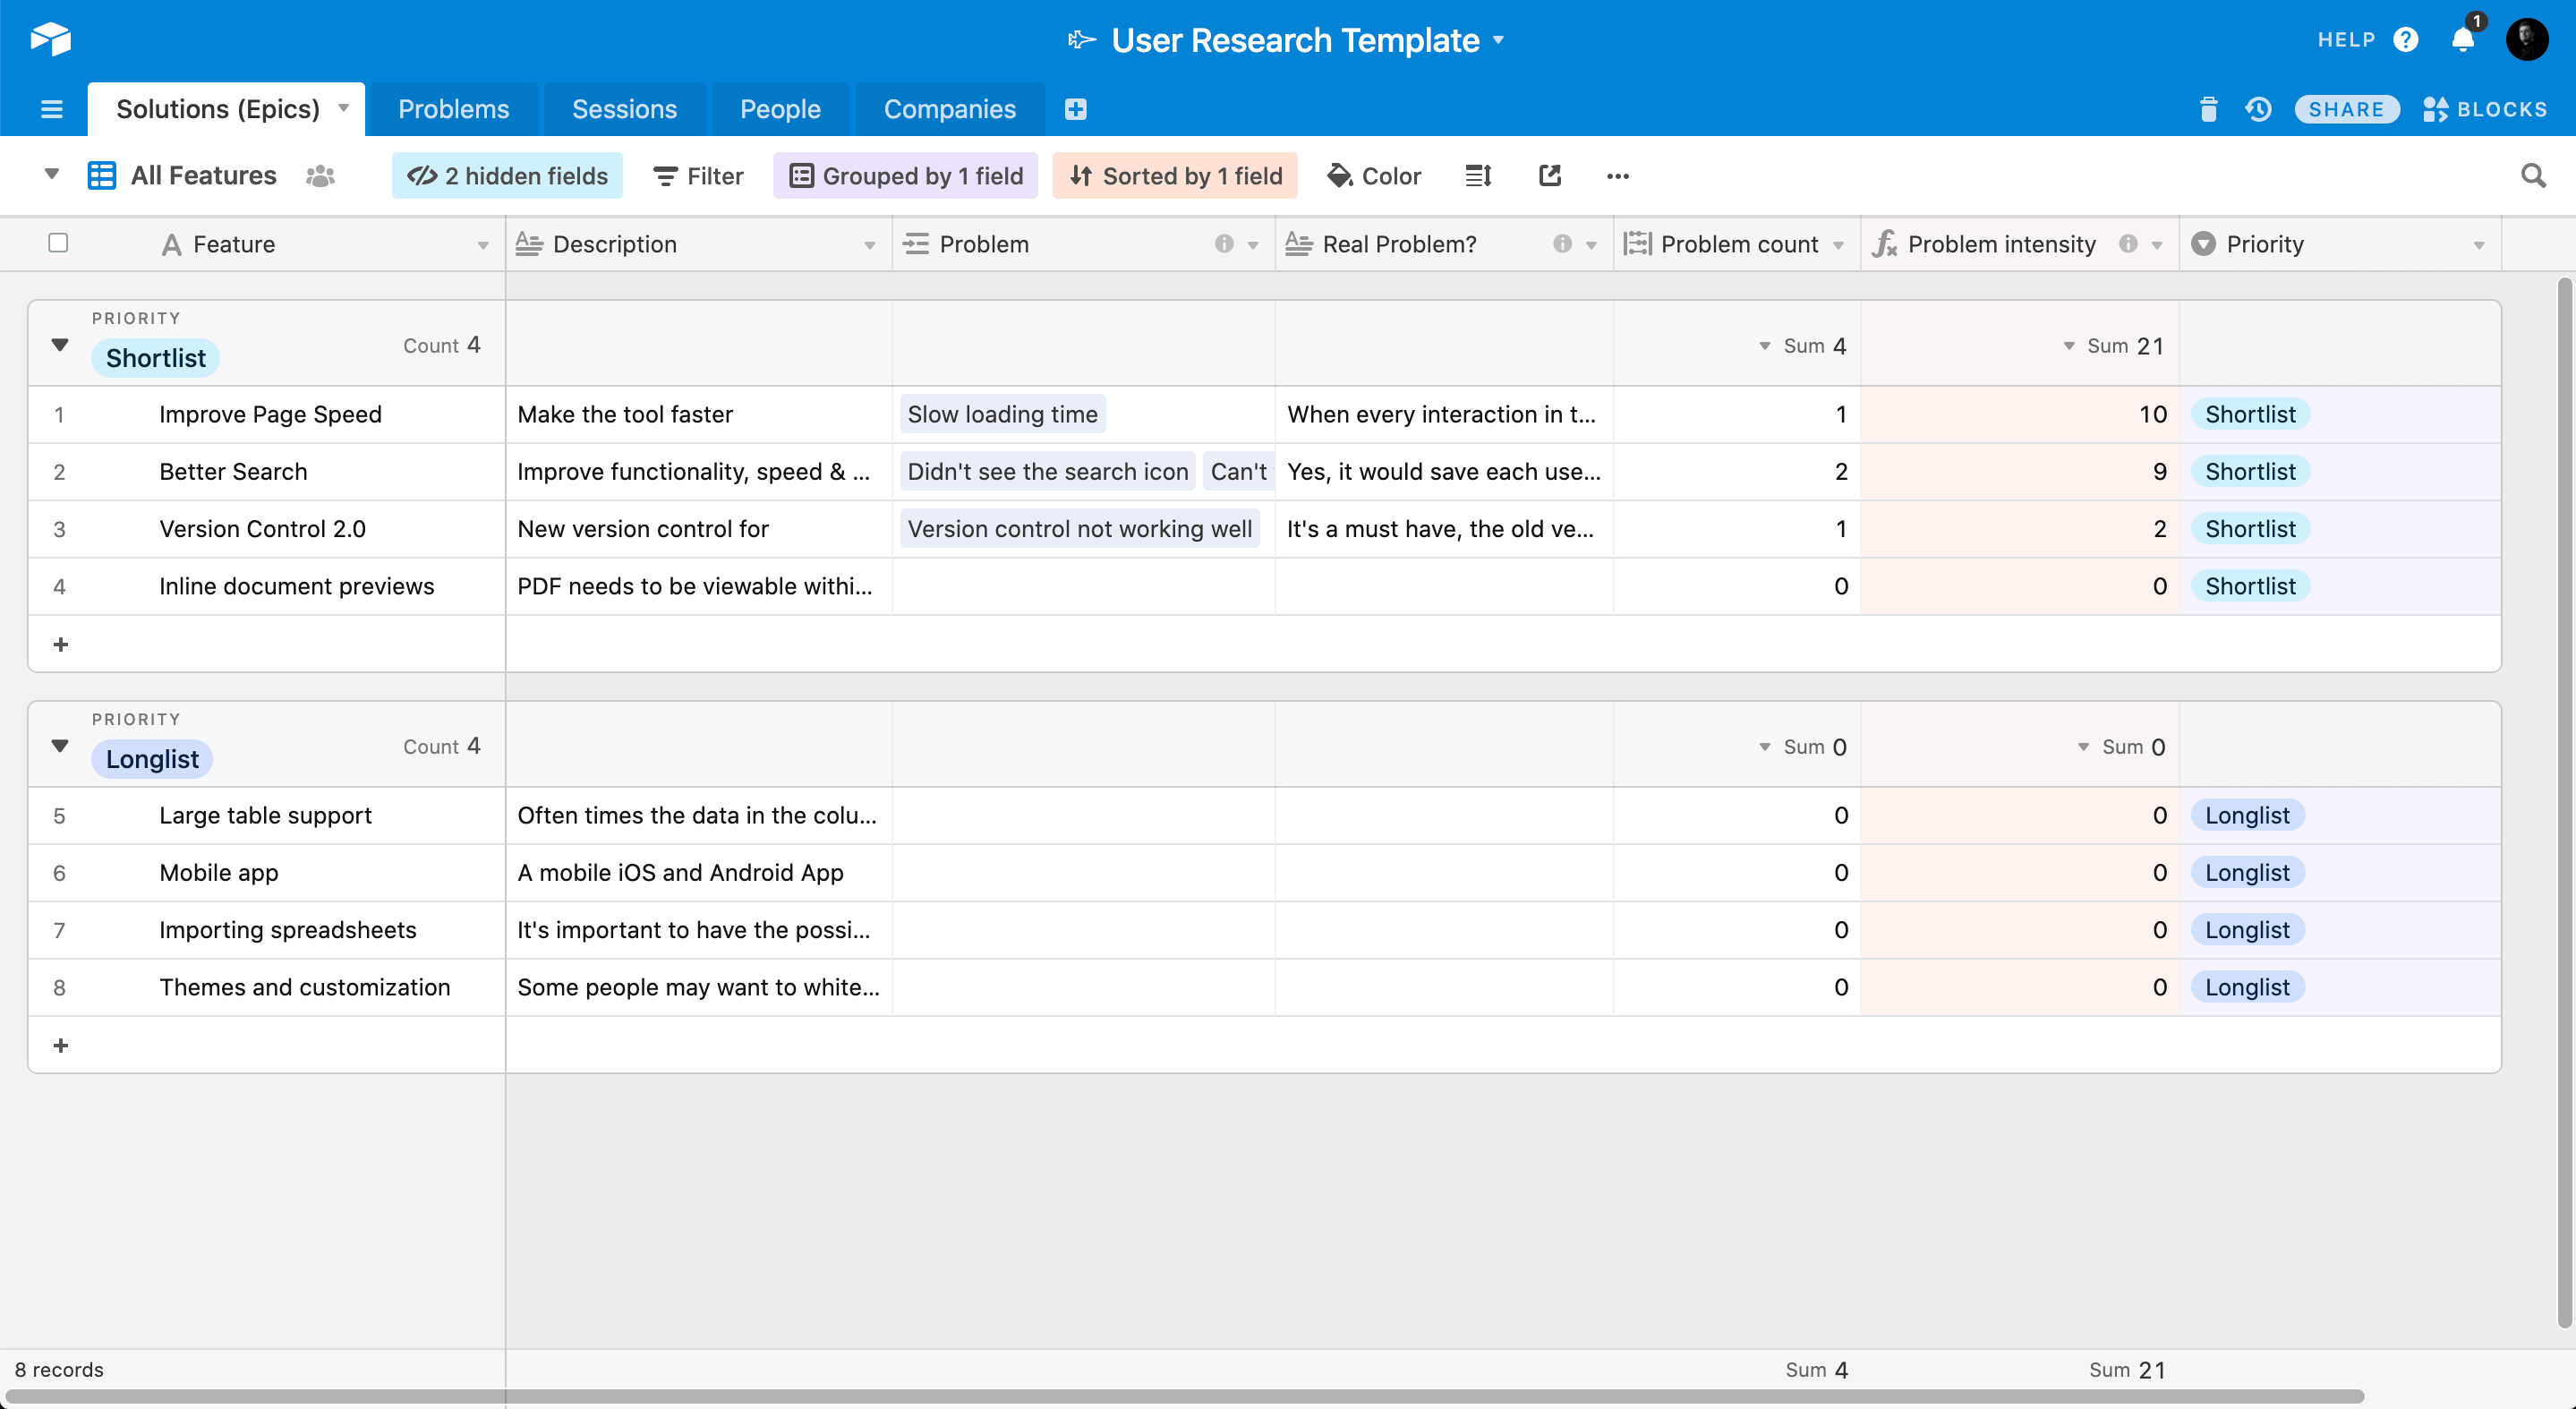 You can find and copy the template here: https://airtable.com/universe/expUOZxToUDGgtOTd/user-research-process